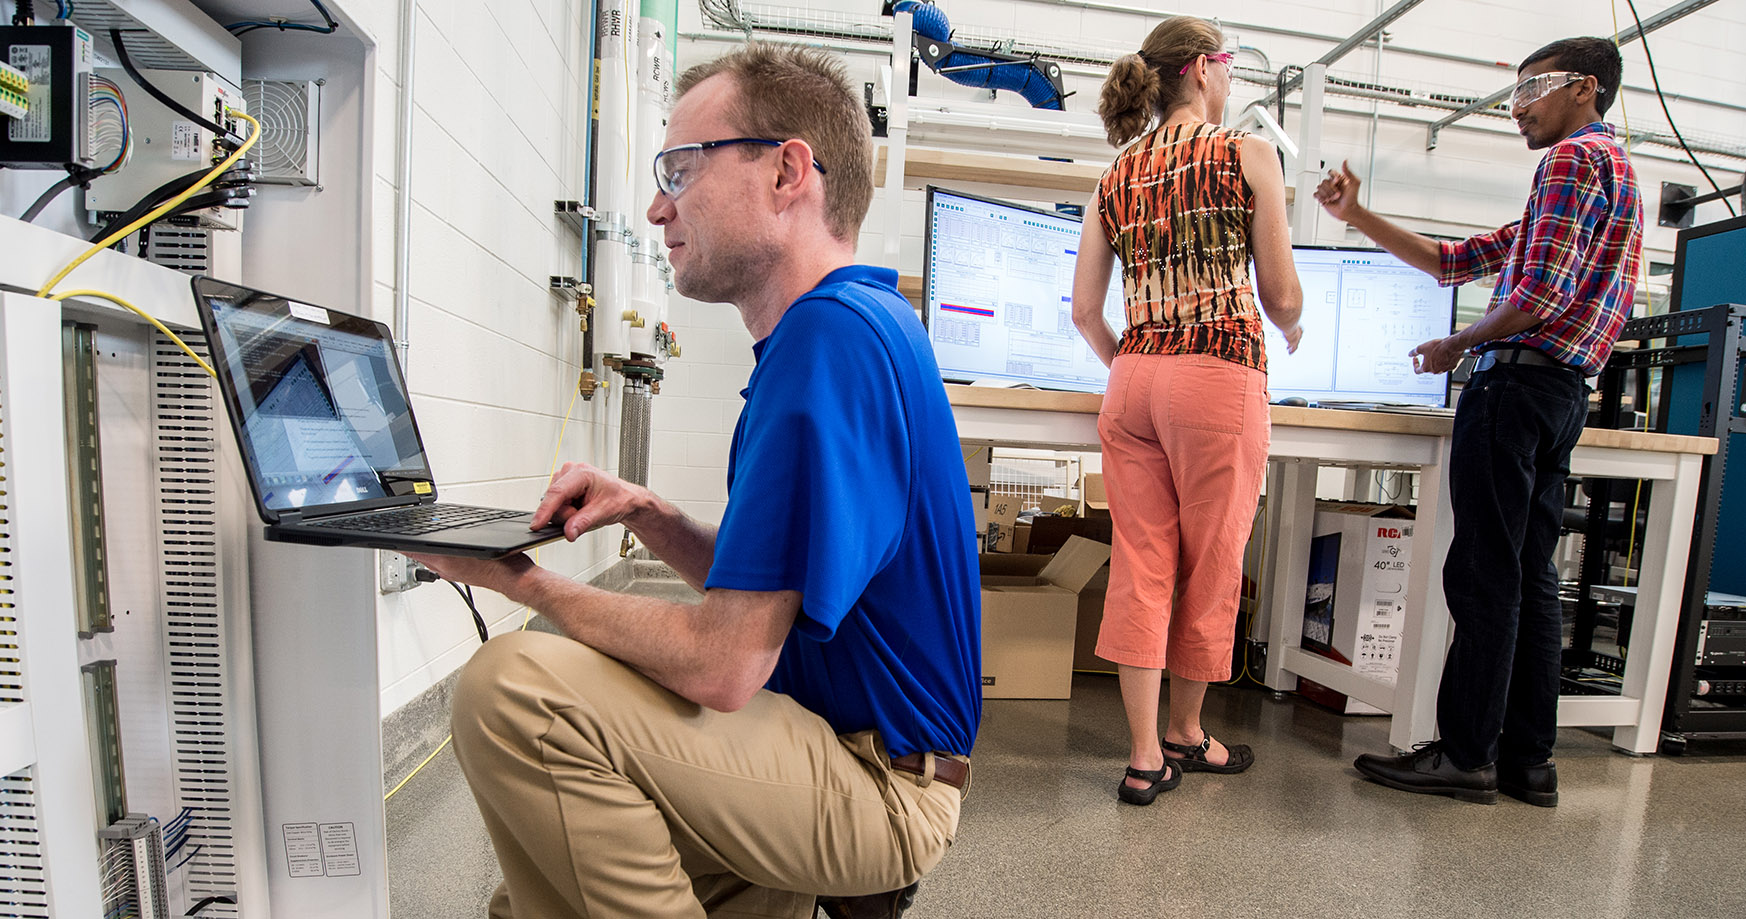 NREL researchers work on controller- and power hardware-in-the-loop test setups to evaluate the performance of microgrid controllers.